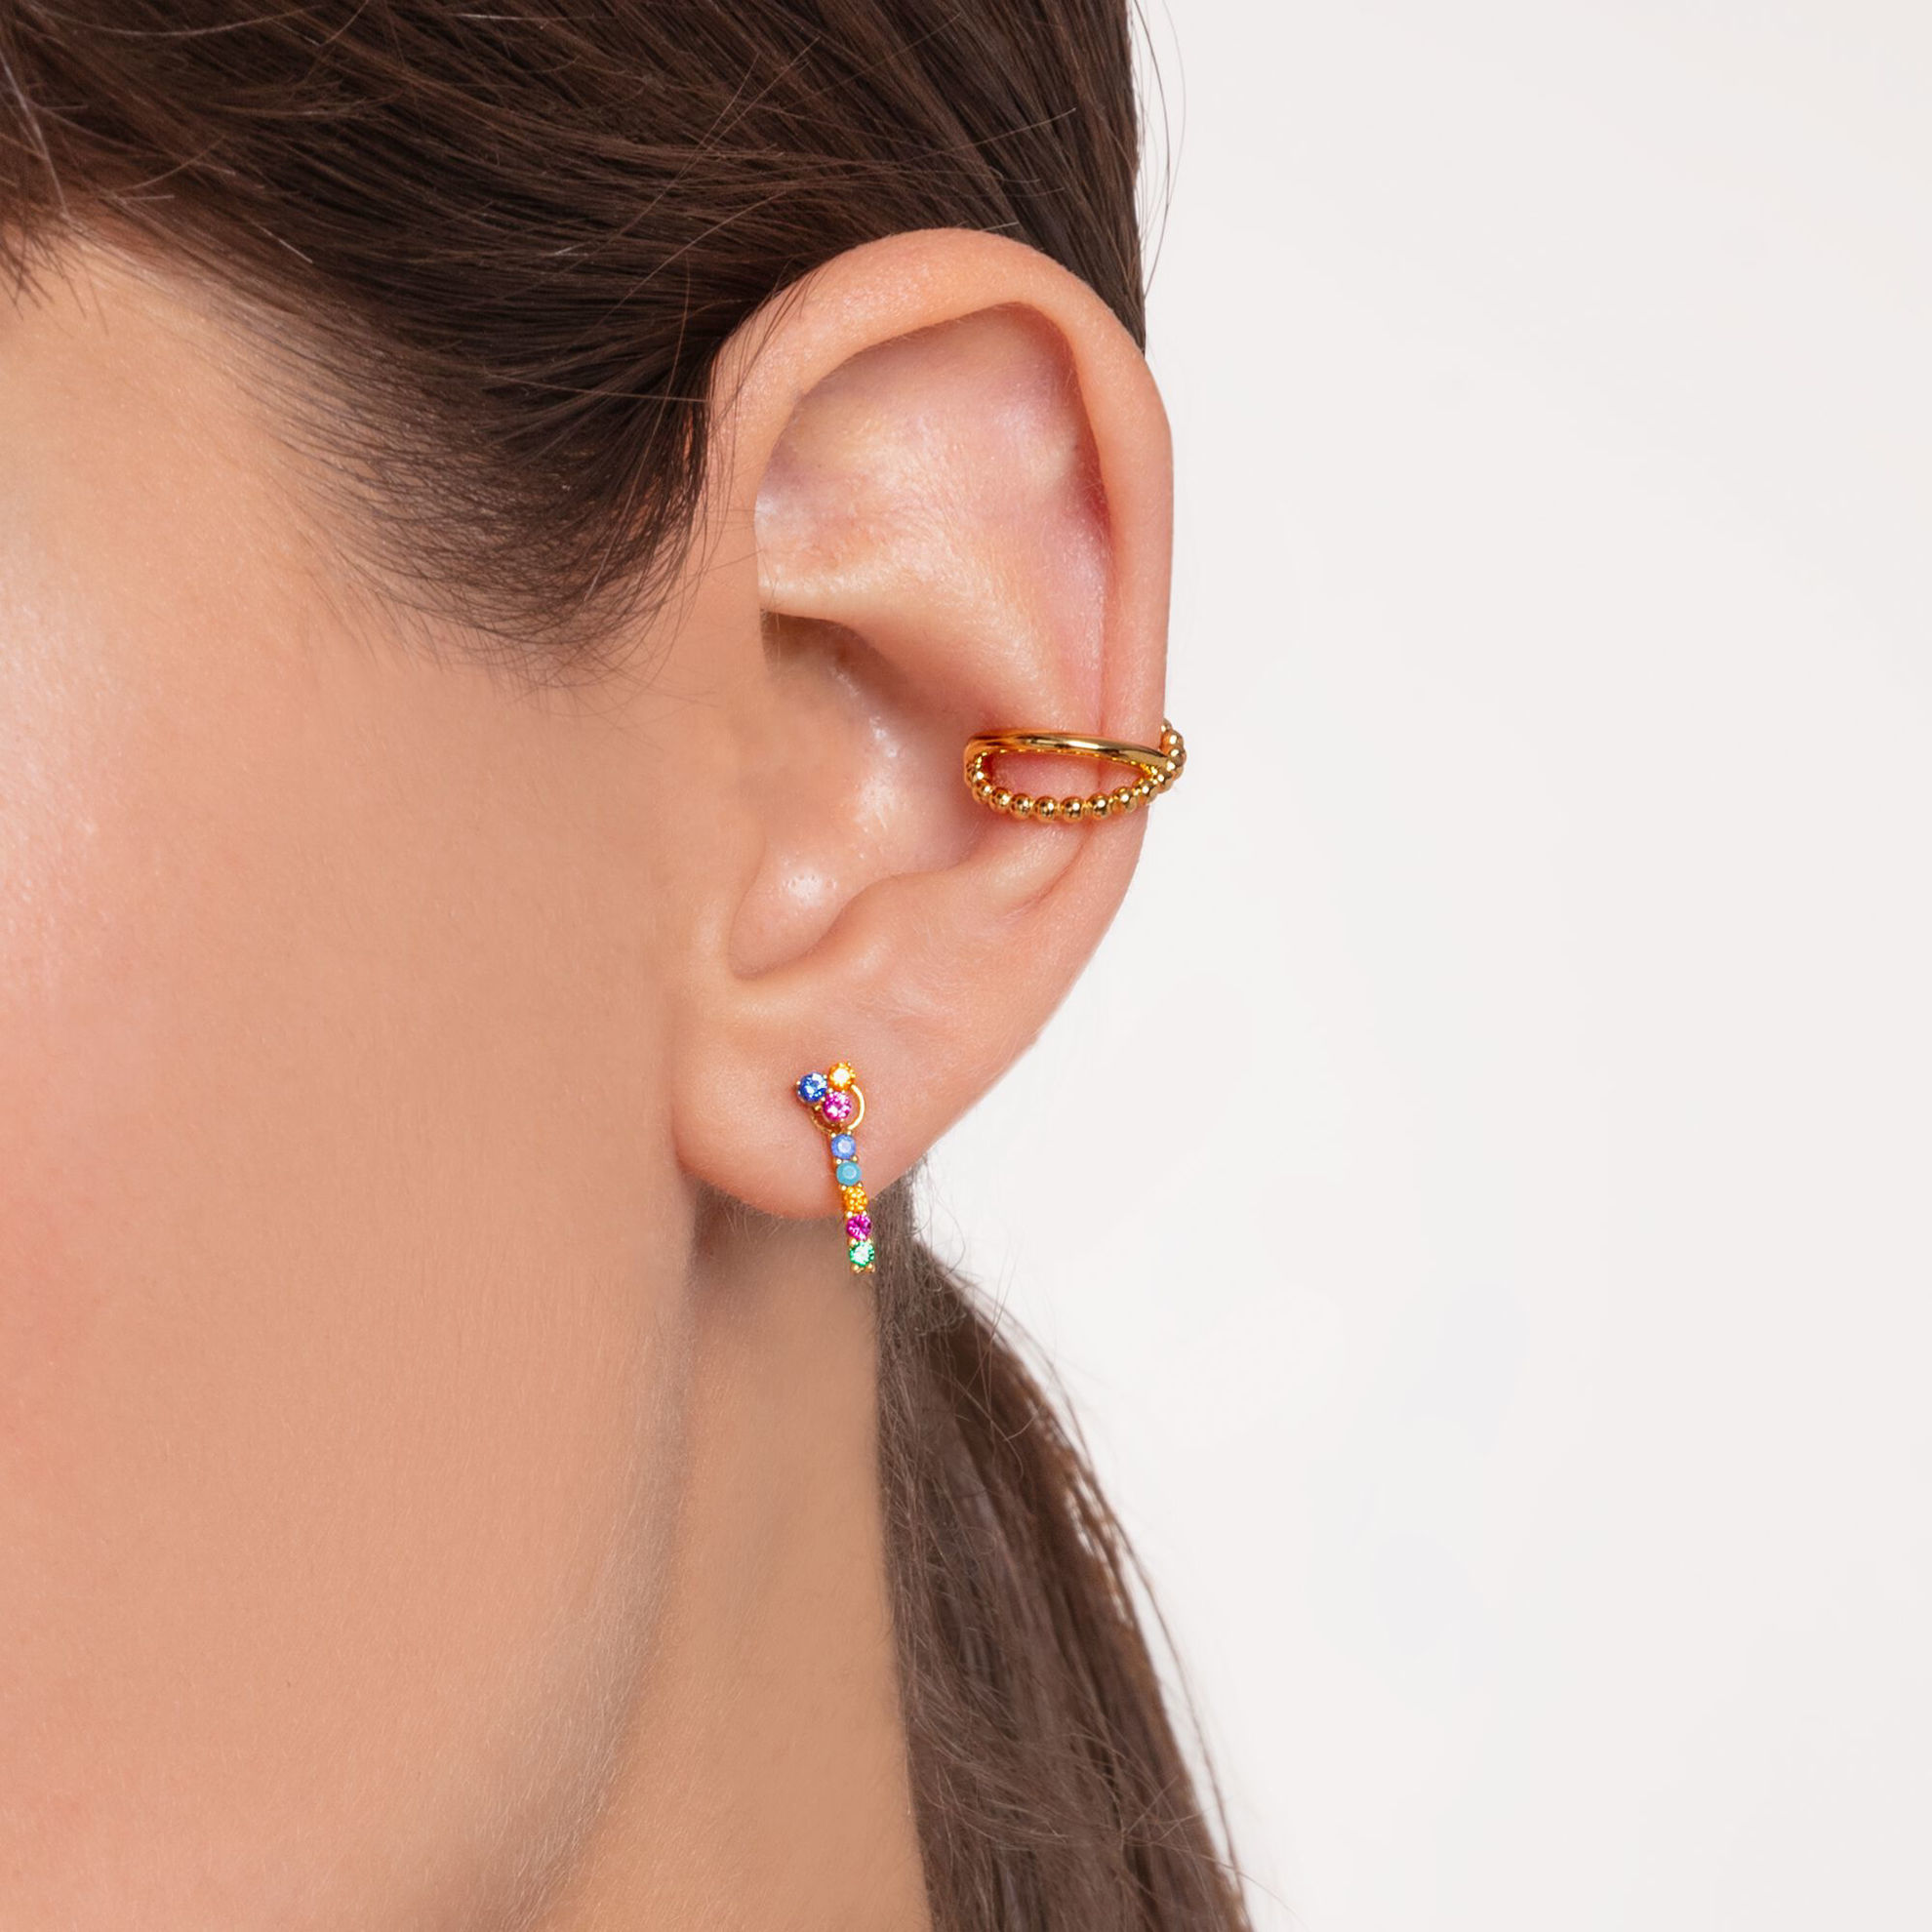 Picture of Cross Over Ear Cuff in Gold